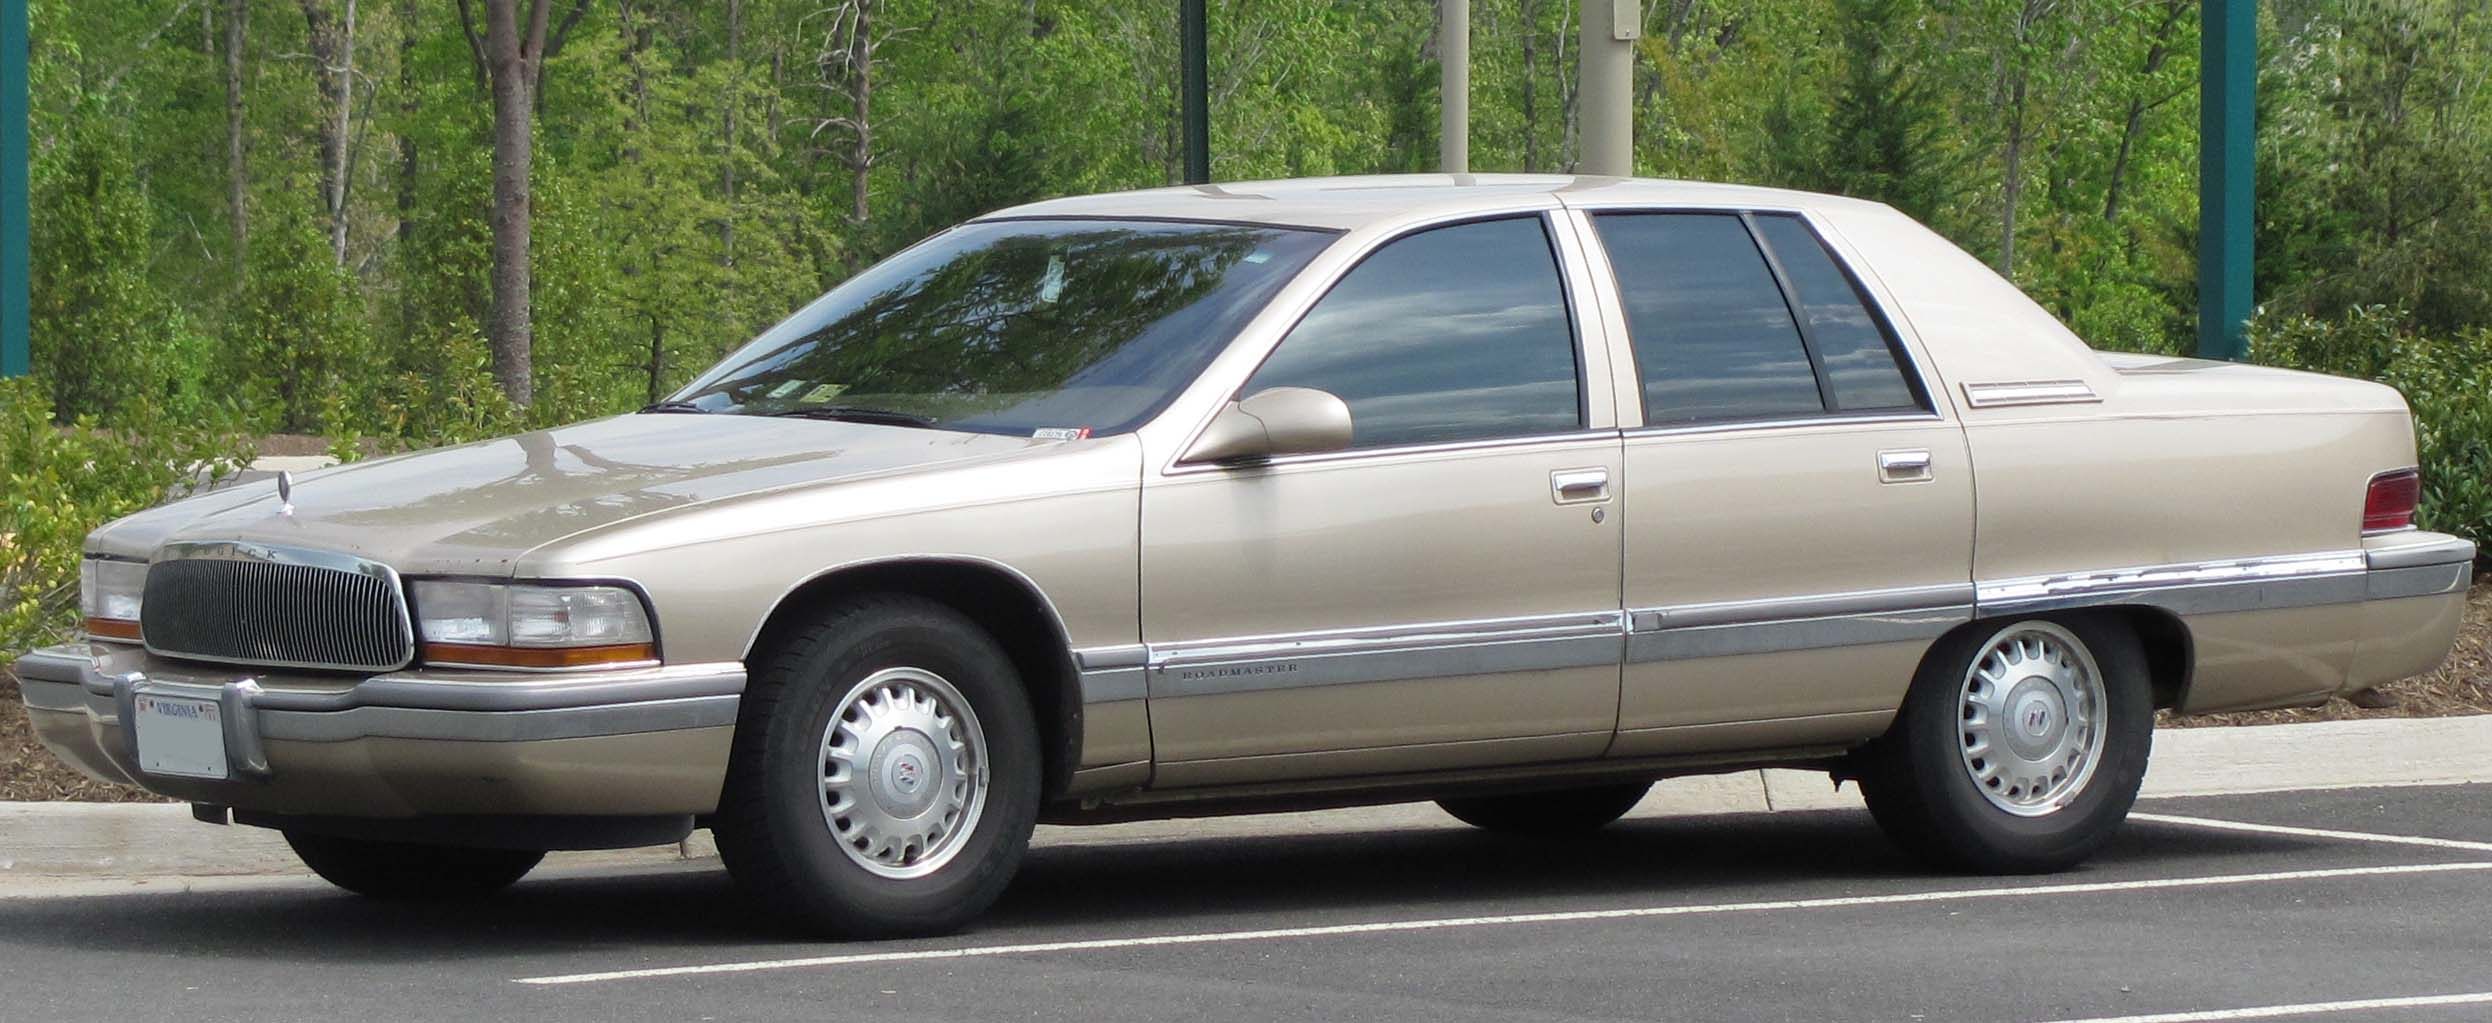 buick roadmaster 1991 wallpaper